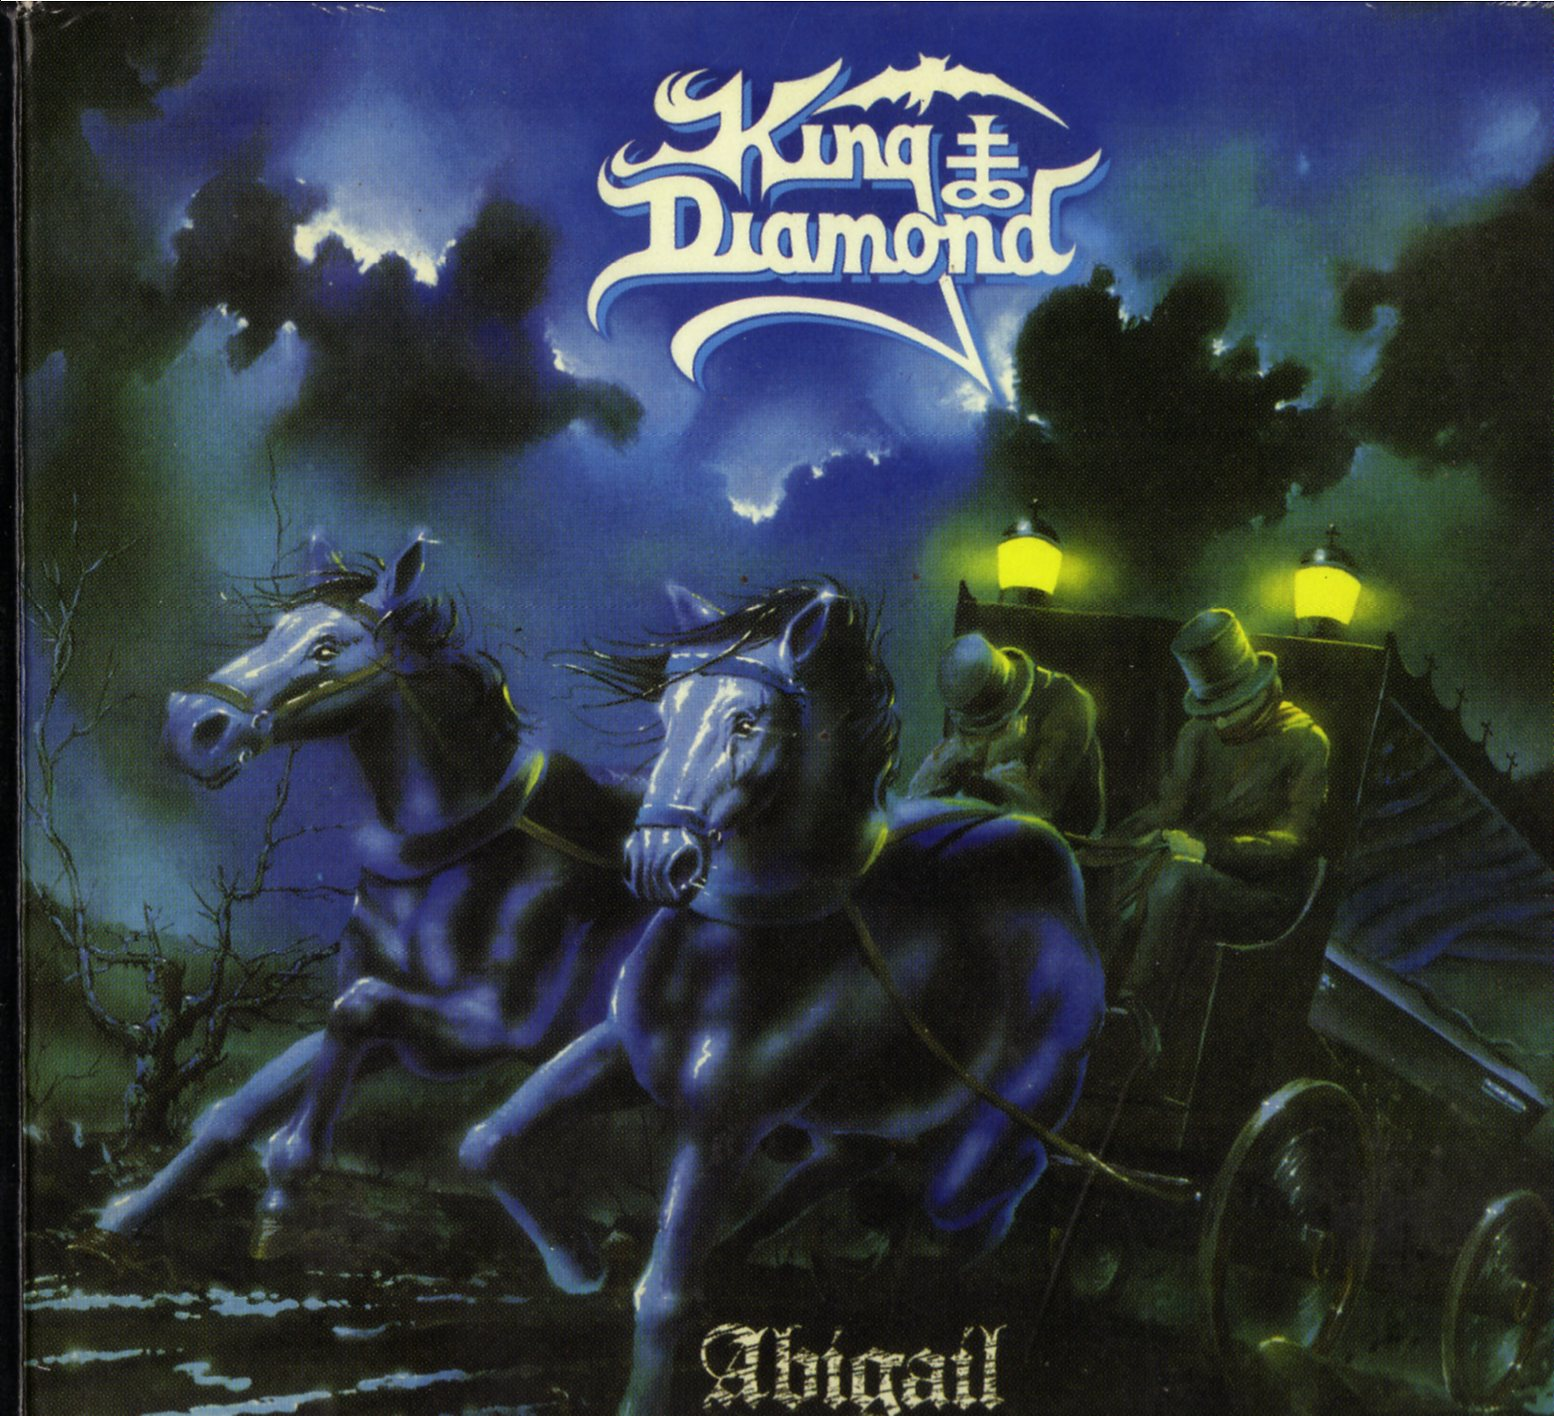 King Diamond Abigail 1696013 Hd Wallpaper Backgrounds Download